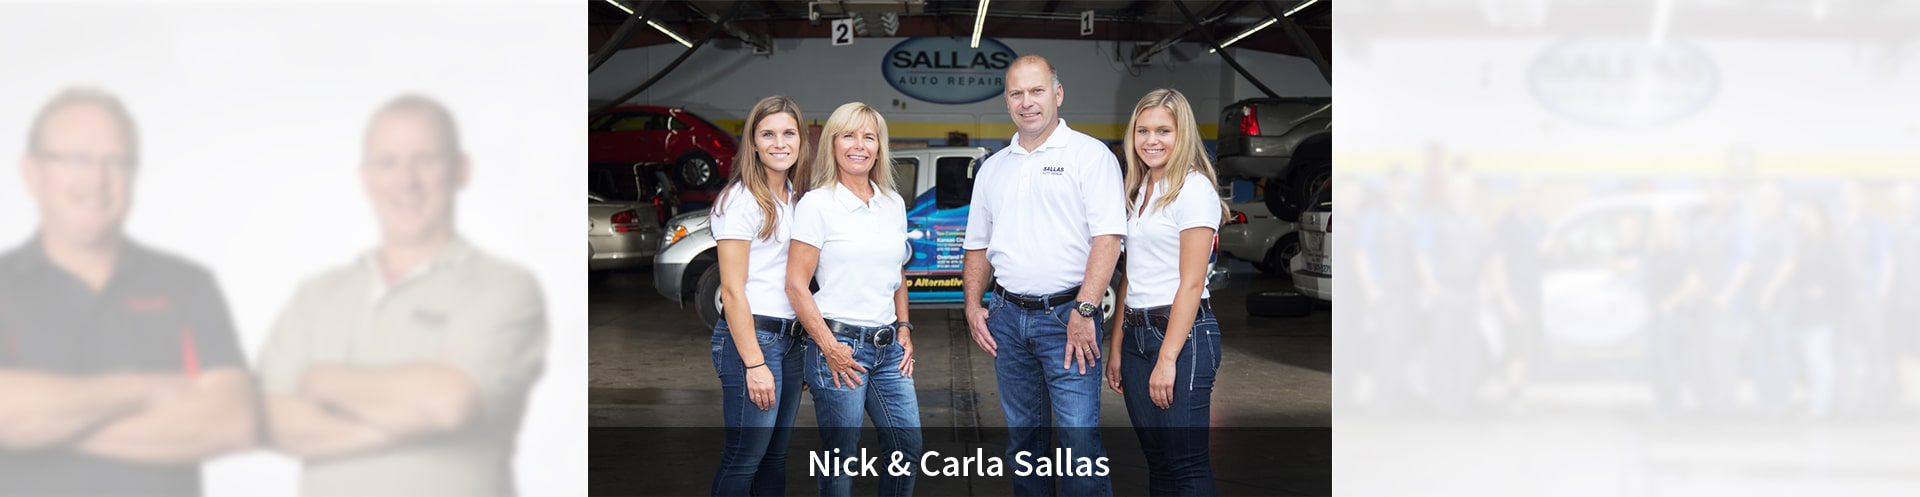 Sallas Auto Repair - Kansas City - Overland Park